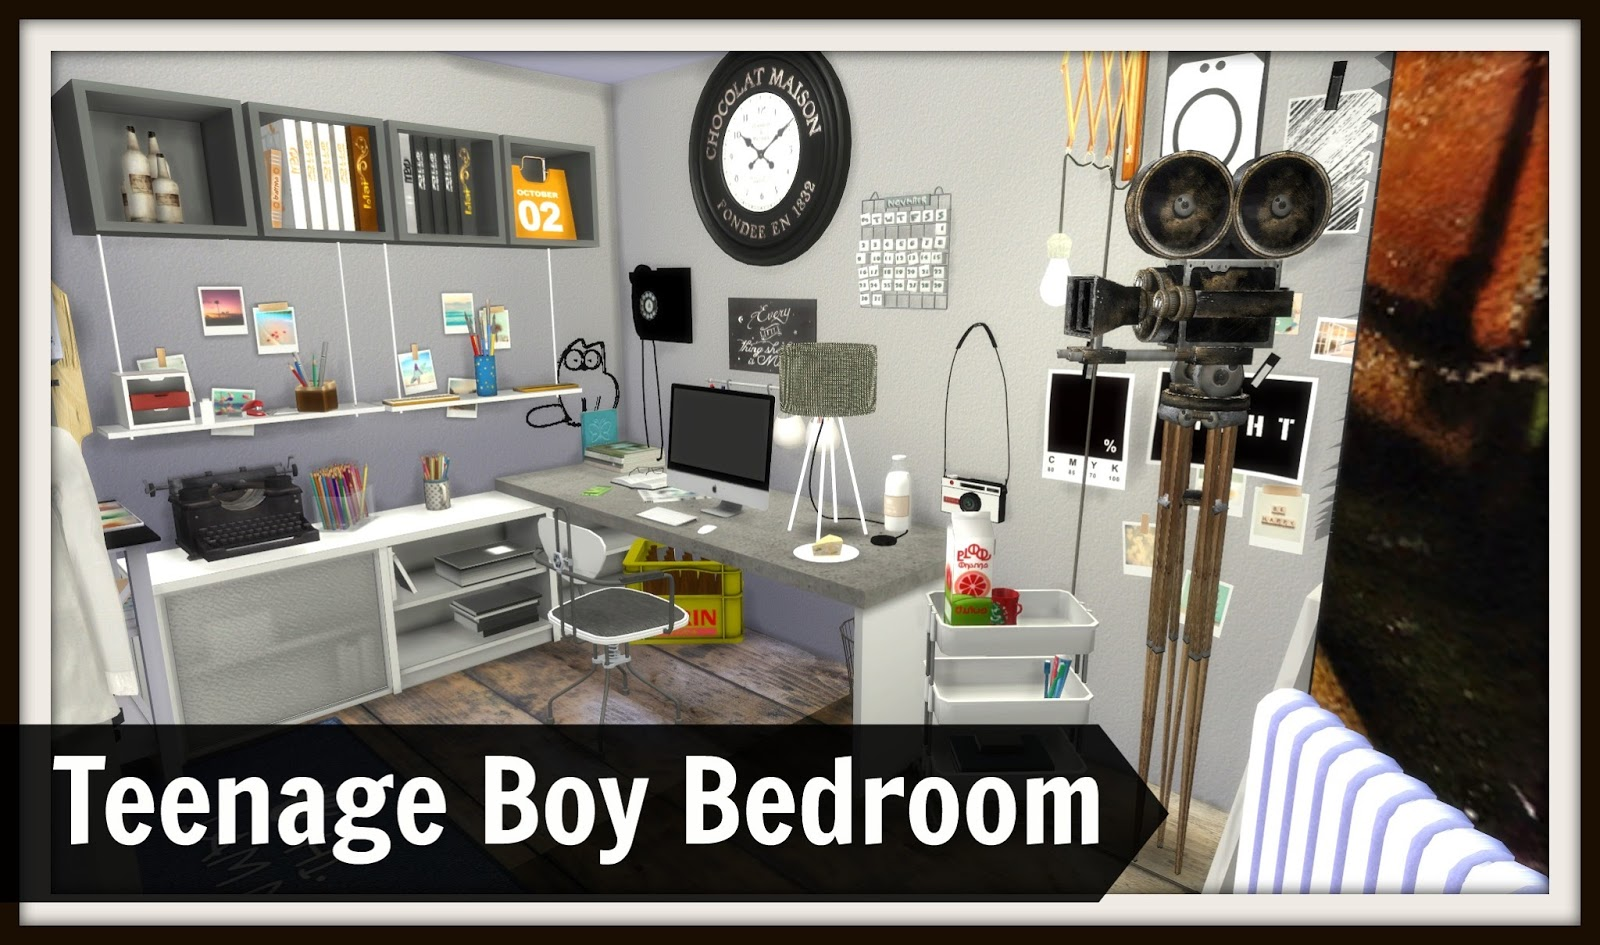 Sims 4 teenage boys room dinha for Bedroom designs sims 4